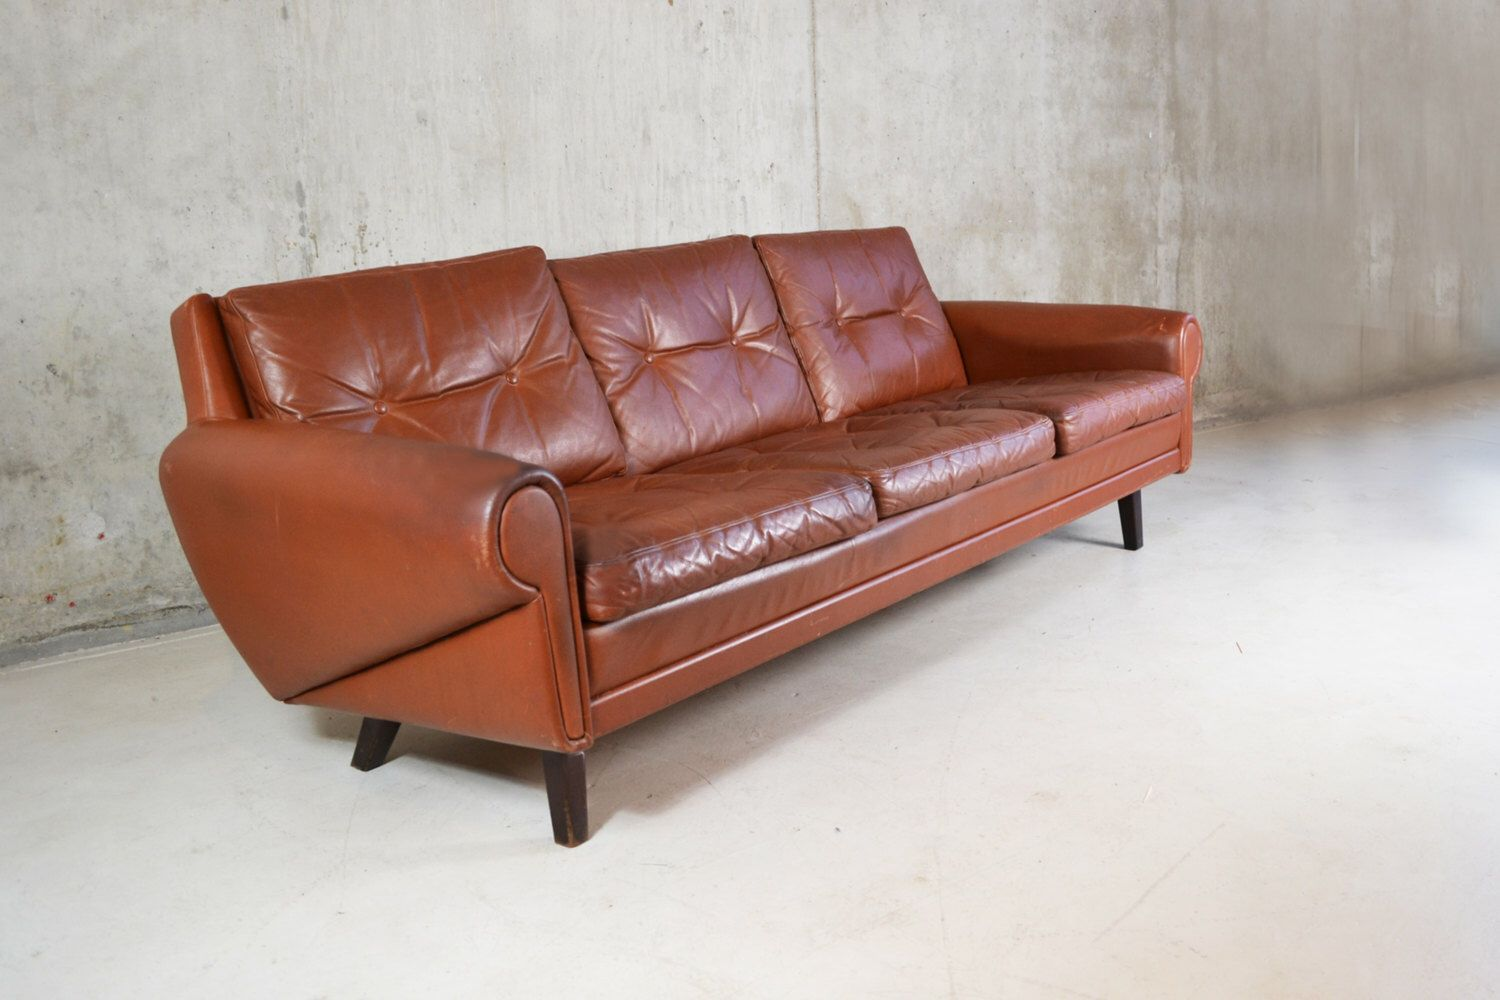 Pin By Studio Ness Llc On My Apartment Retro Furniture Leather